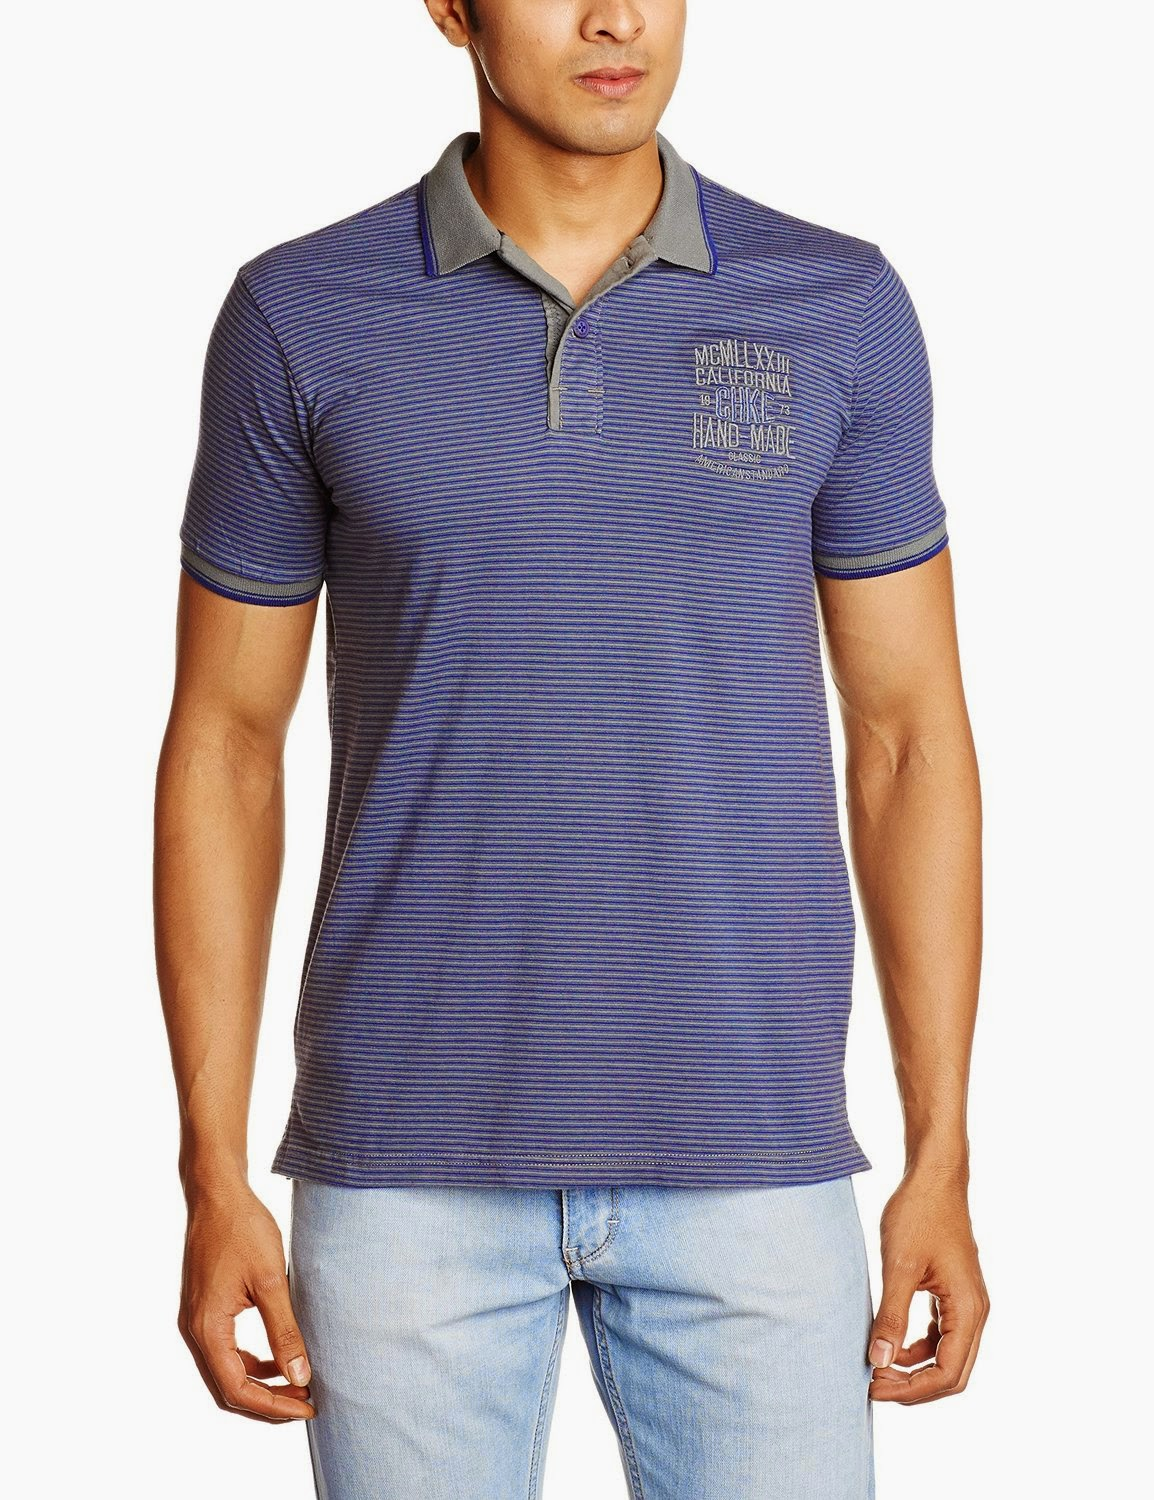 Buy Cherokee Men's Cotton Polo Shirt Rs. 359 only at Amazon.